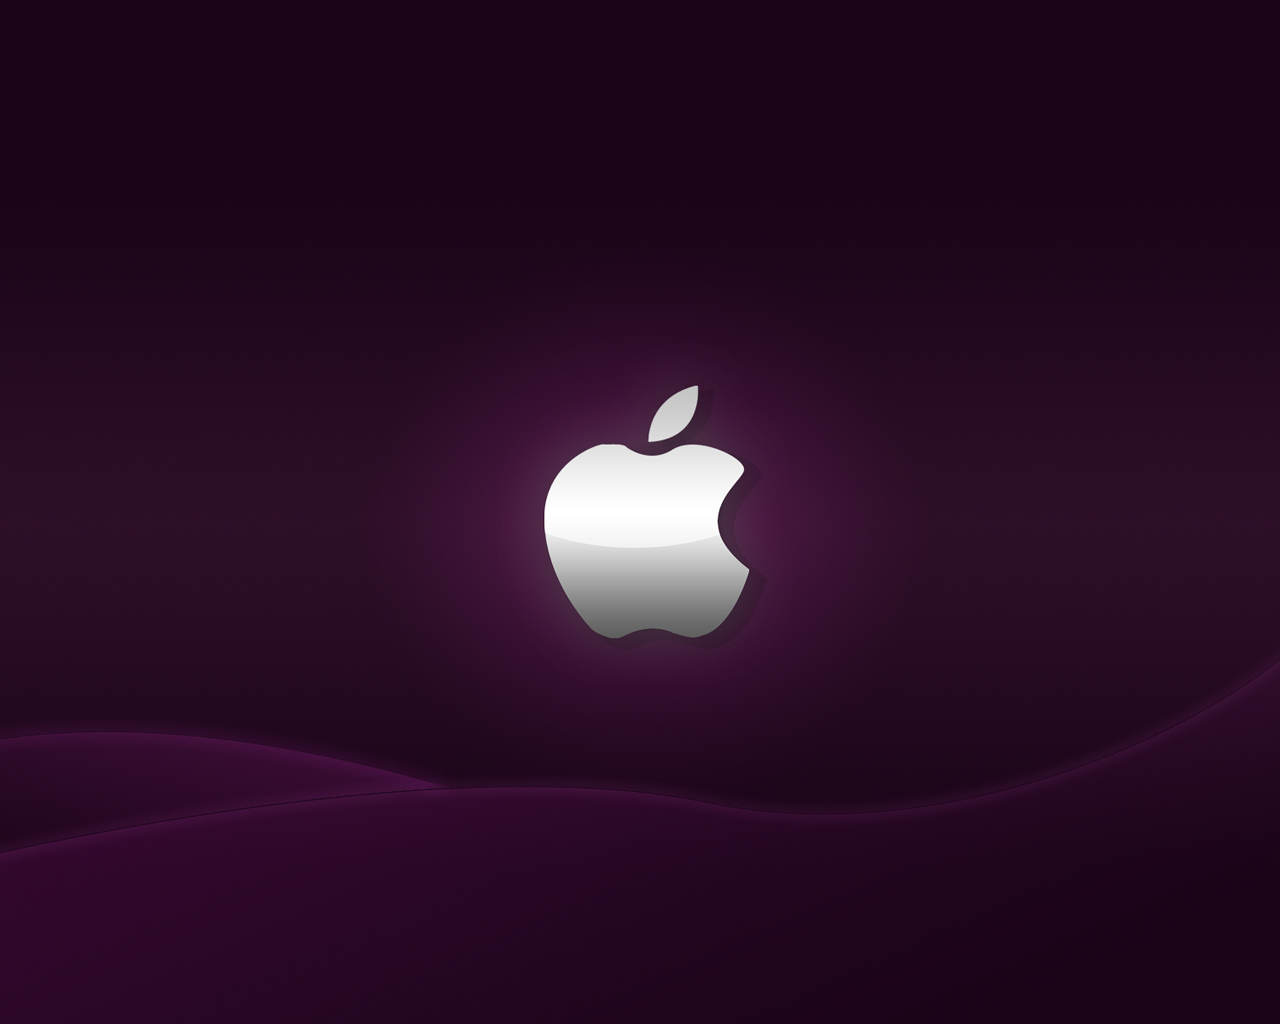 apple hd desktop purple background wallpapers | purple background